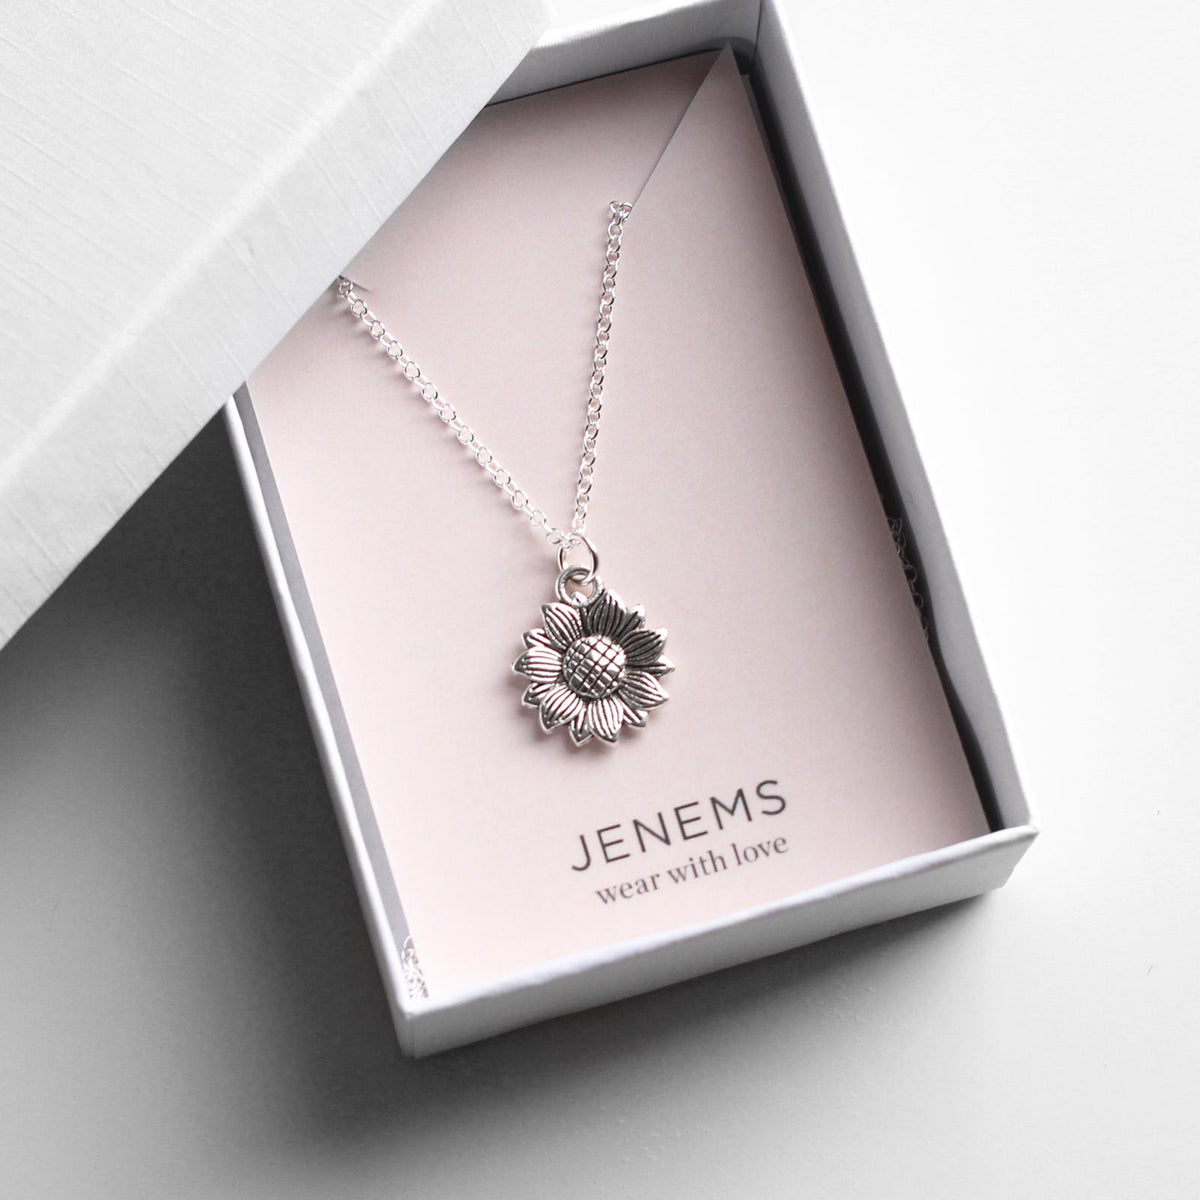 Azaggi 925 Sterling Silver Pendant Necklace Daisy Flower Charm Pendant 16mm-16mm Lobster Claw Clasp.This 925 Sterling Silver Daisy Flower Pendant Necklace is the Perfect Holiday Gift Jewelry Gift